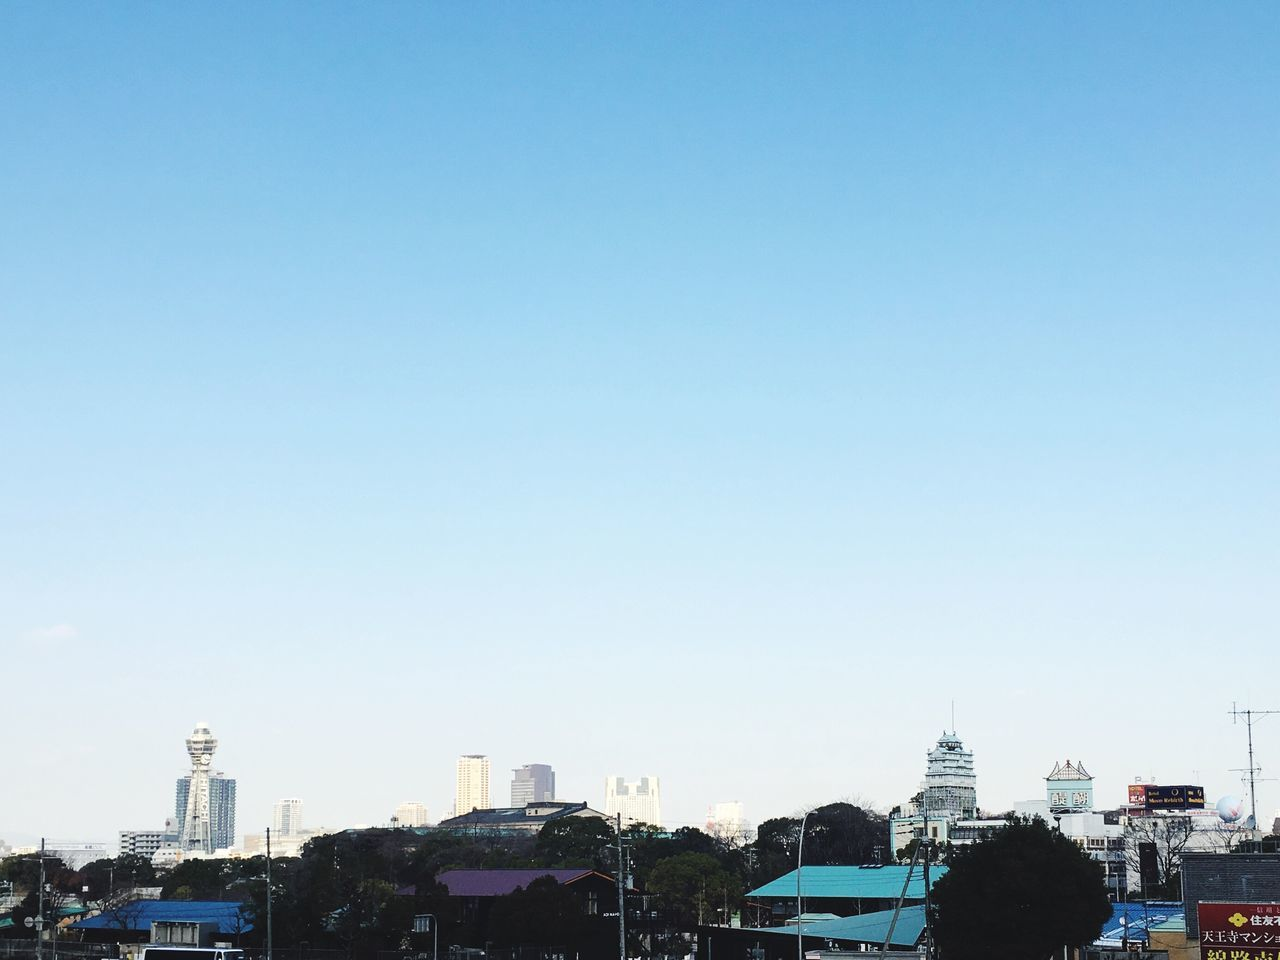 copy space, architecture, built structure, building exterior, clear sky, city, residential building, blue, outdoors, day, cityscape, no people, sky